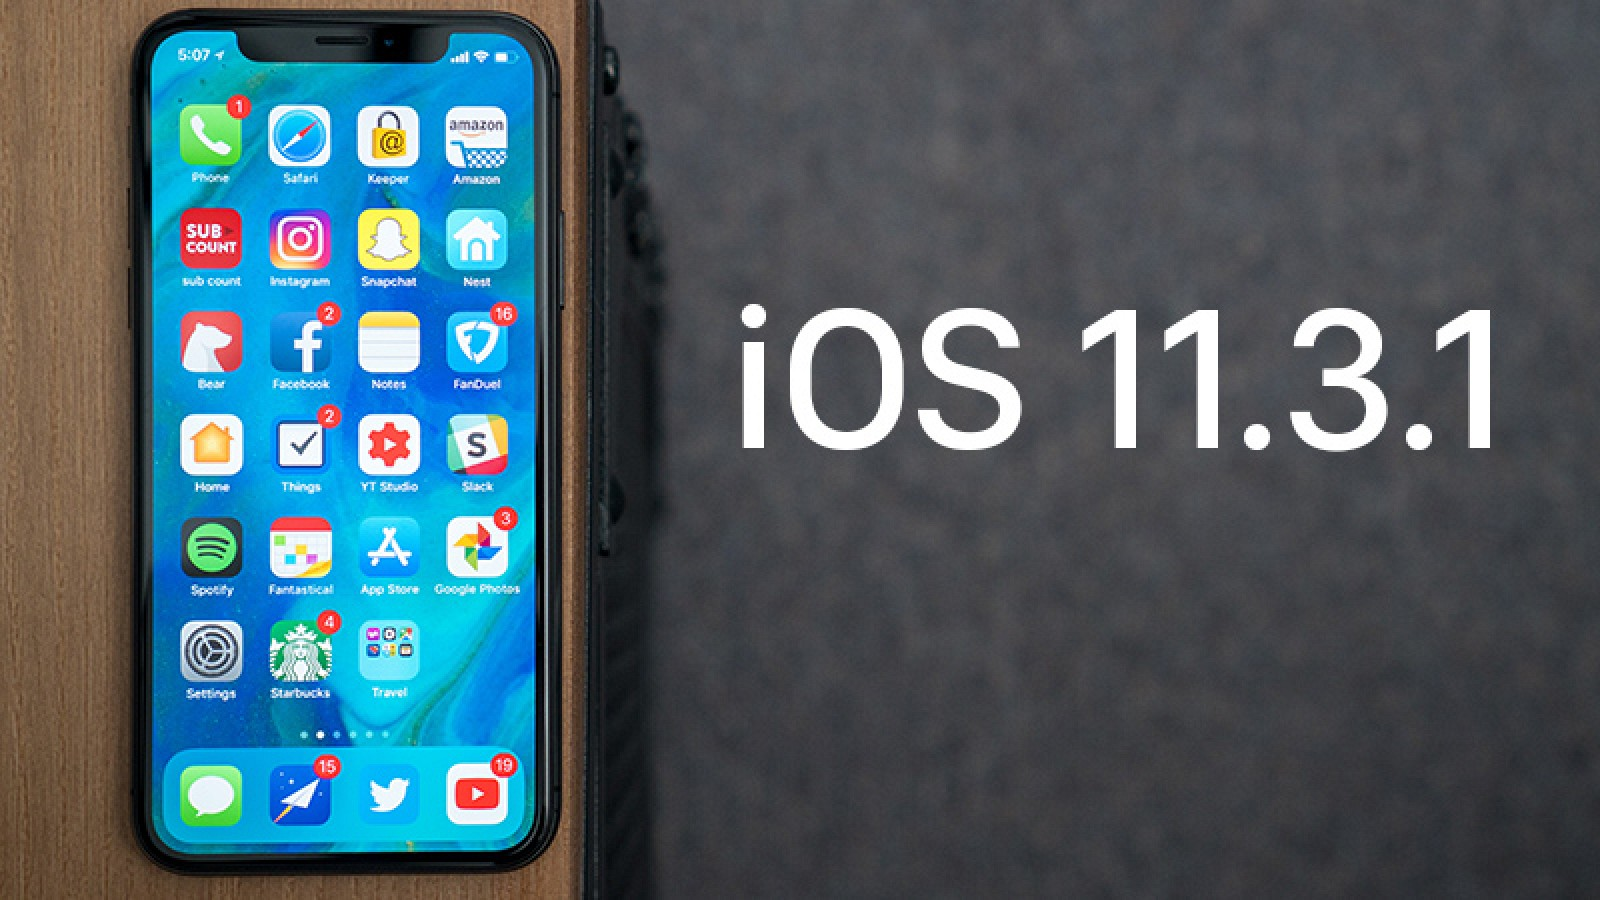 Apple Releases iOS 11.3.1 Update With Fix for Third-Party Display Repair  Issue - MacRumors